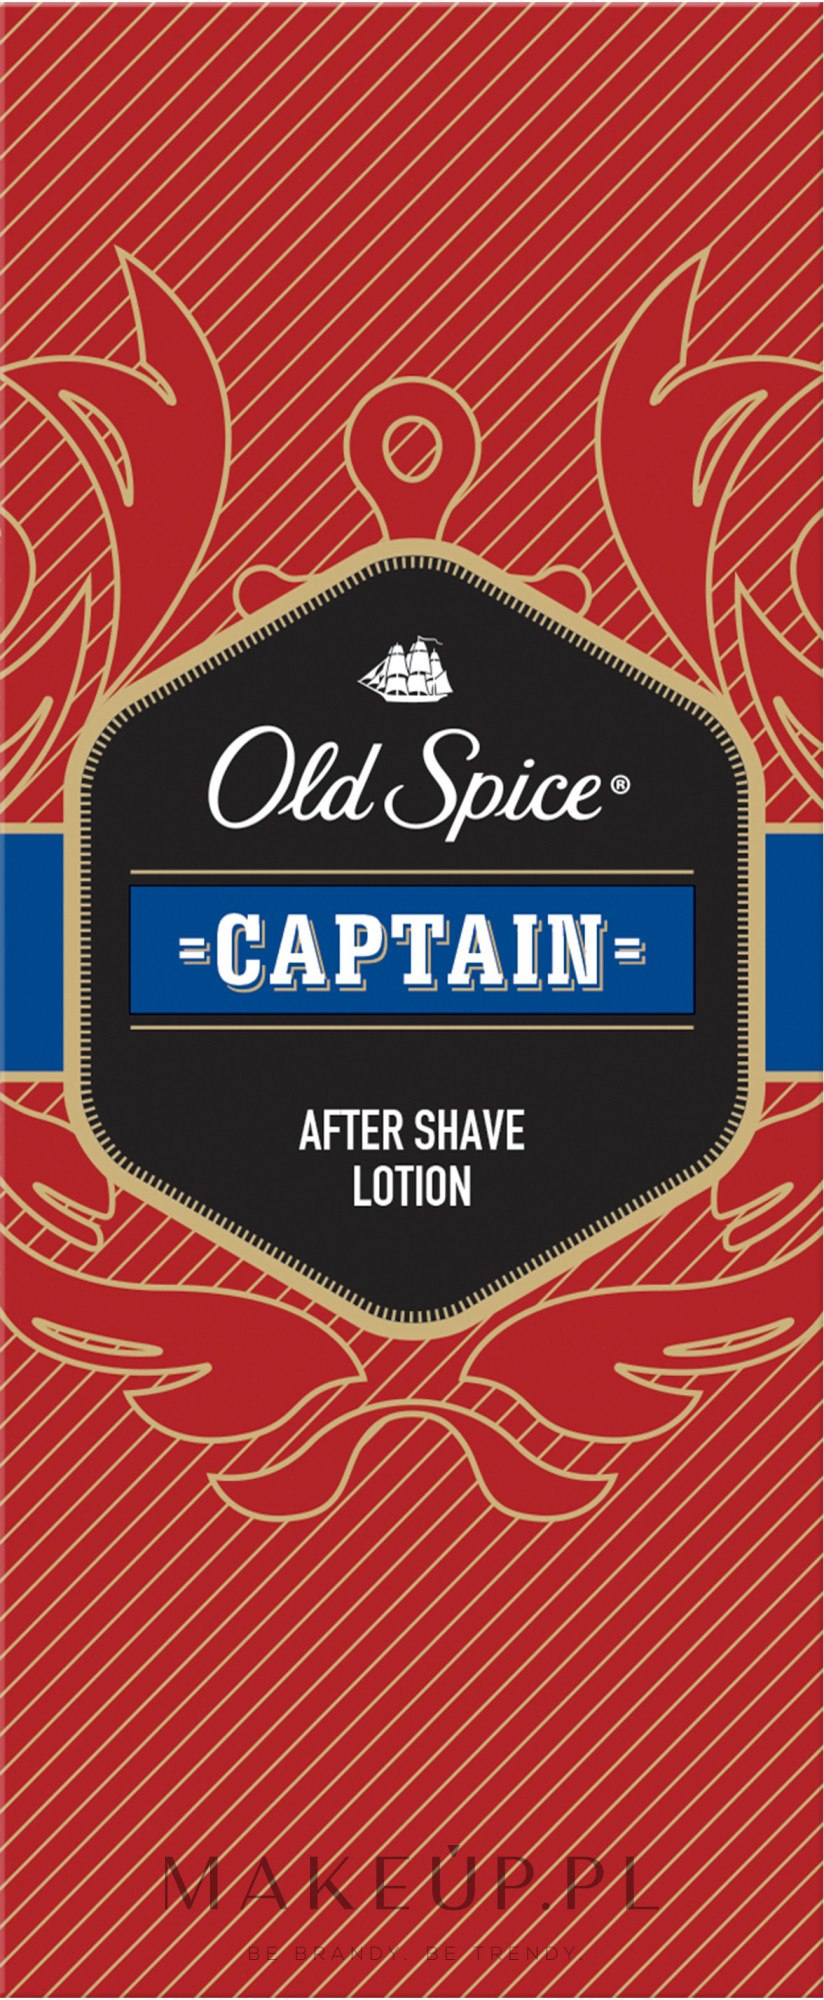 procter & gamble old spice captain